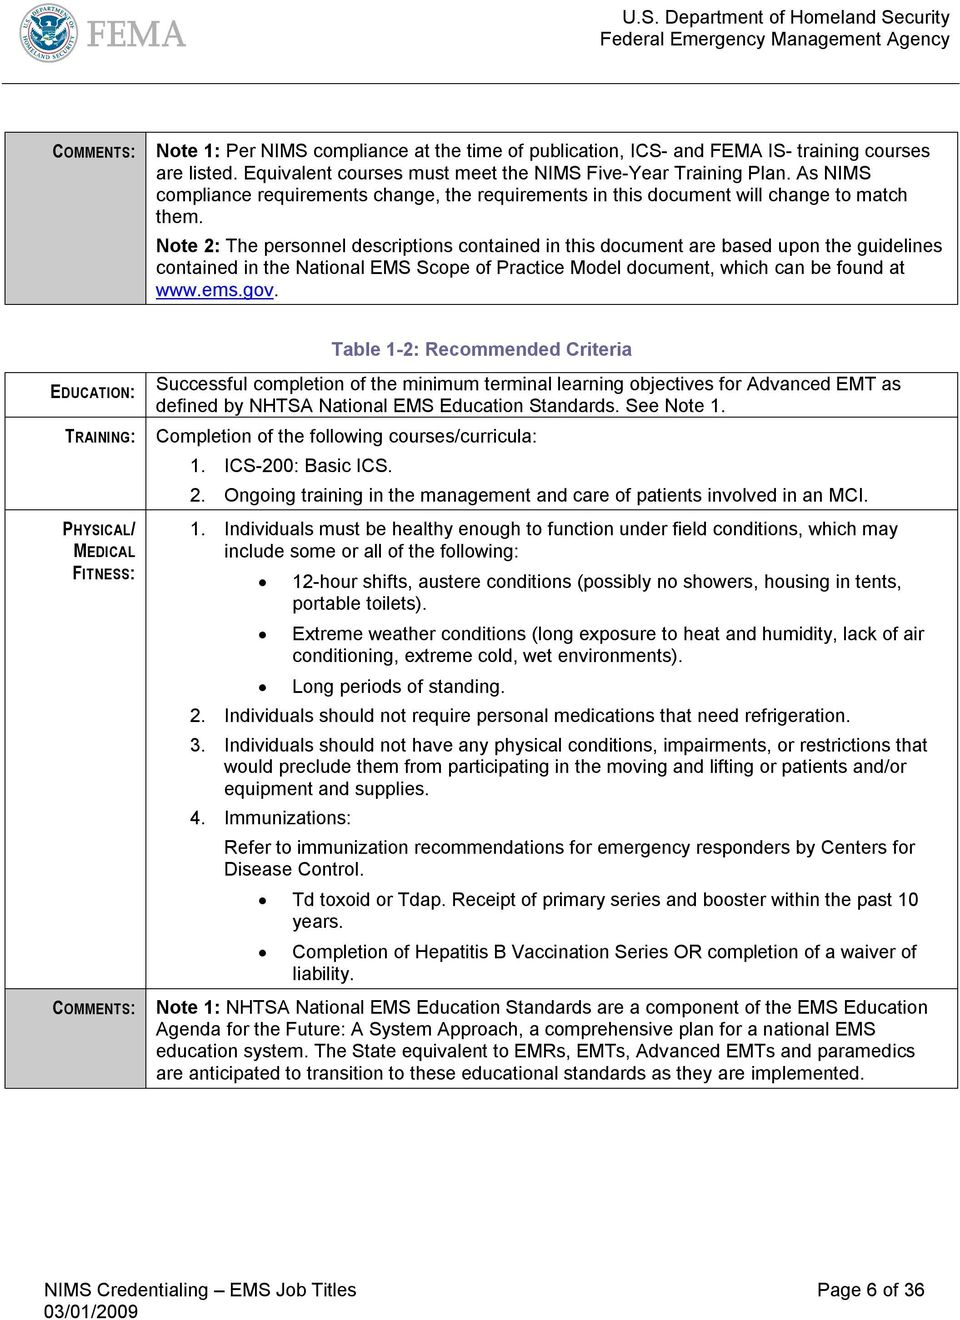 Note 2: The personnel descriptions contained in this document are based upon the guidelines contained in the National EMS Scope of Practice Model document, which can be found at www.ems.gov.